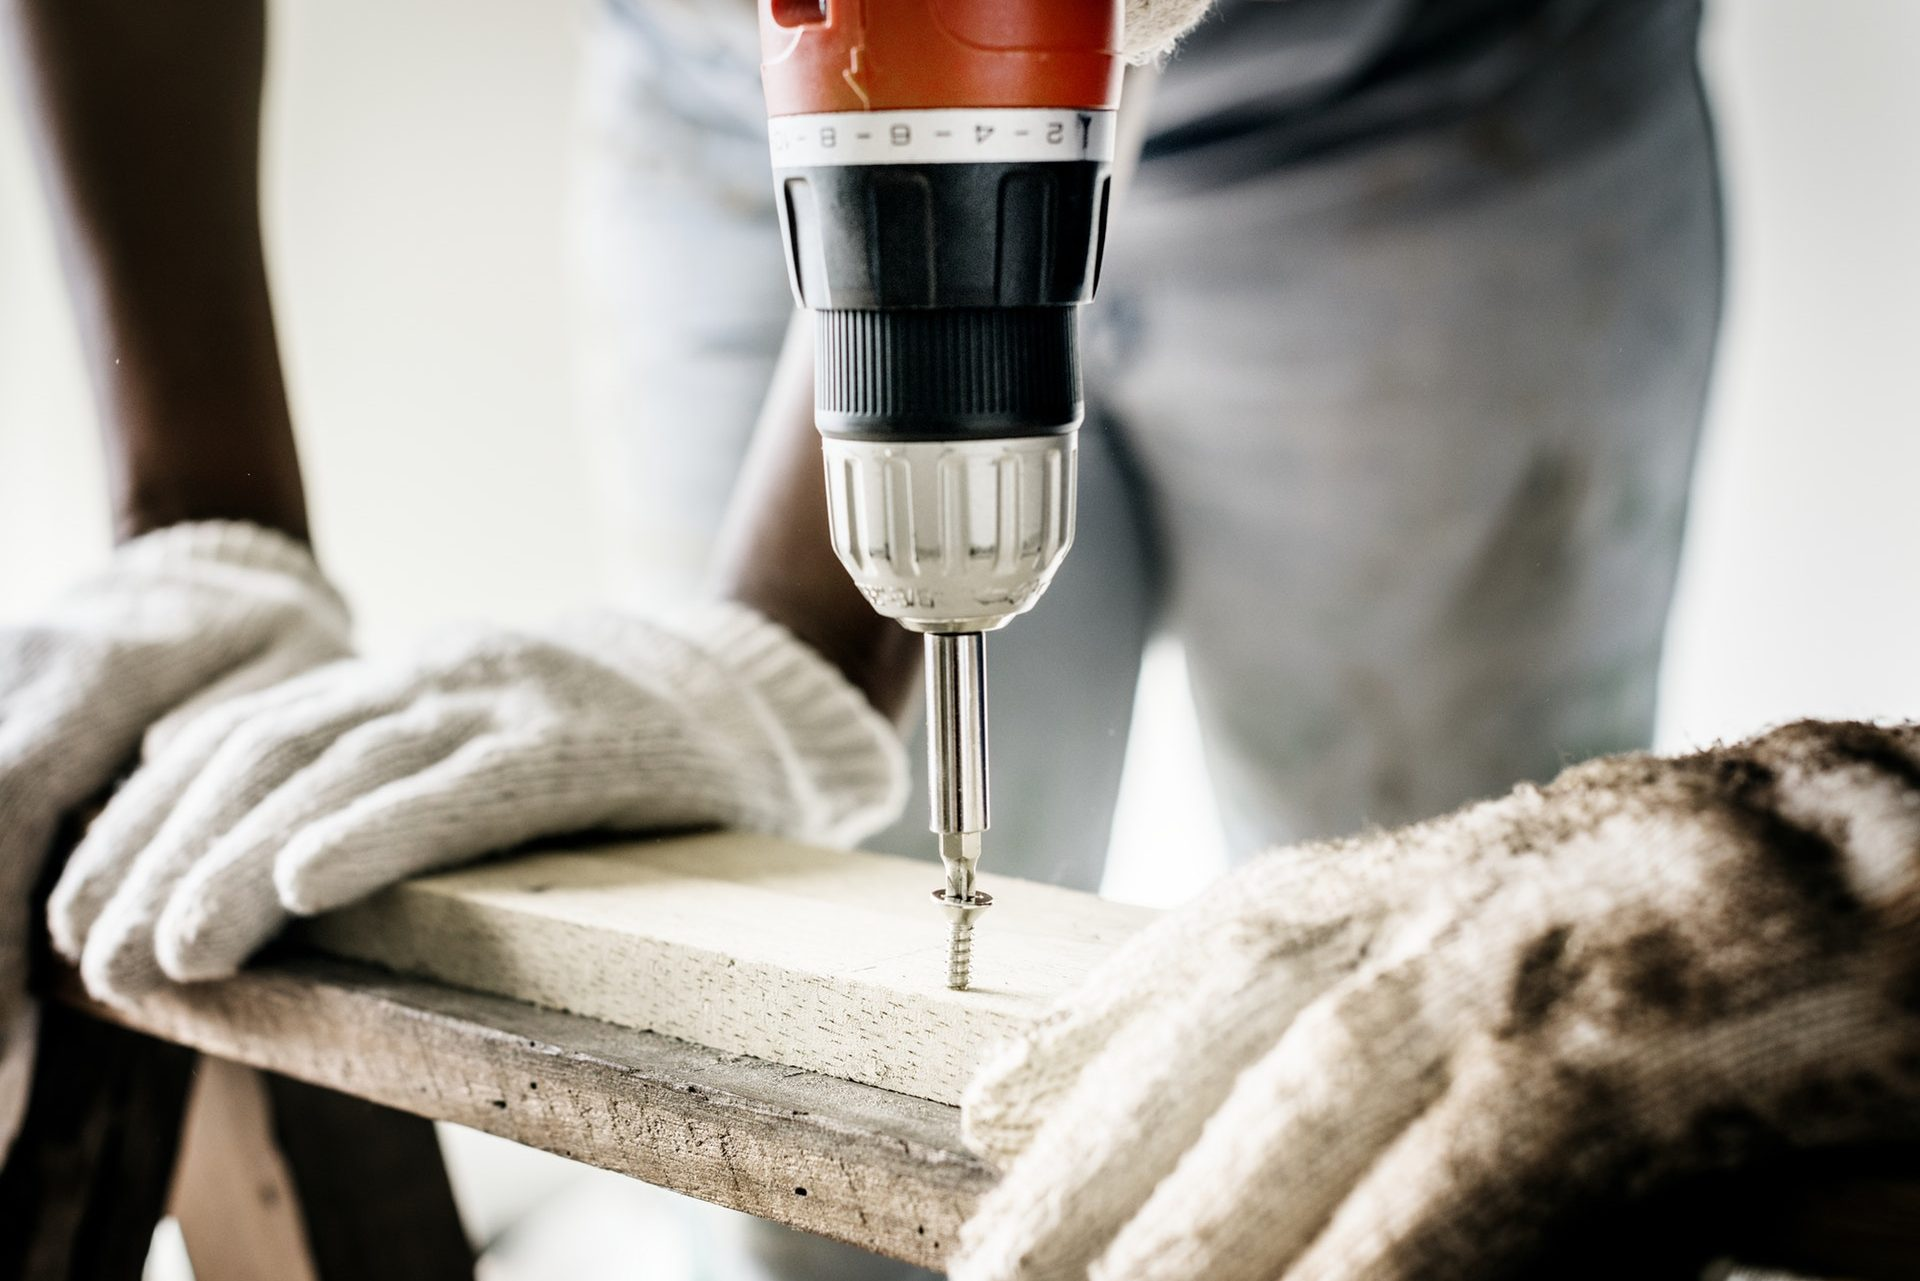 a person drills a screw into a plank of wood